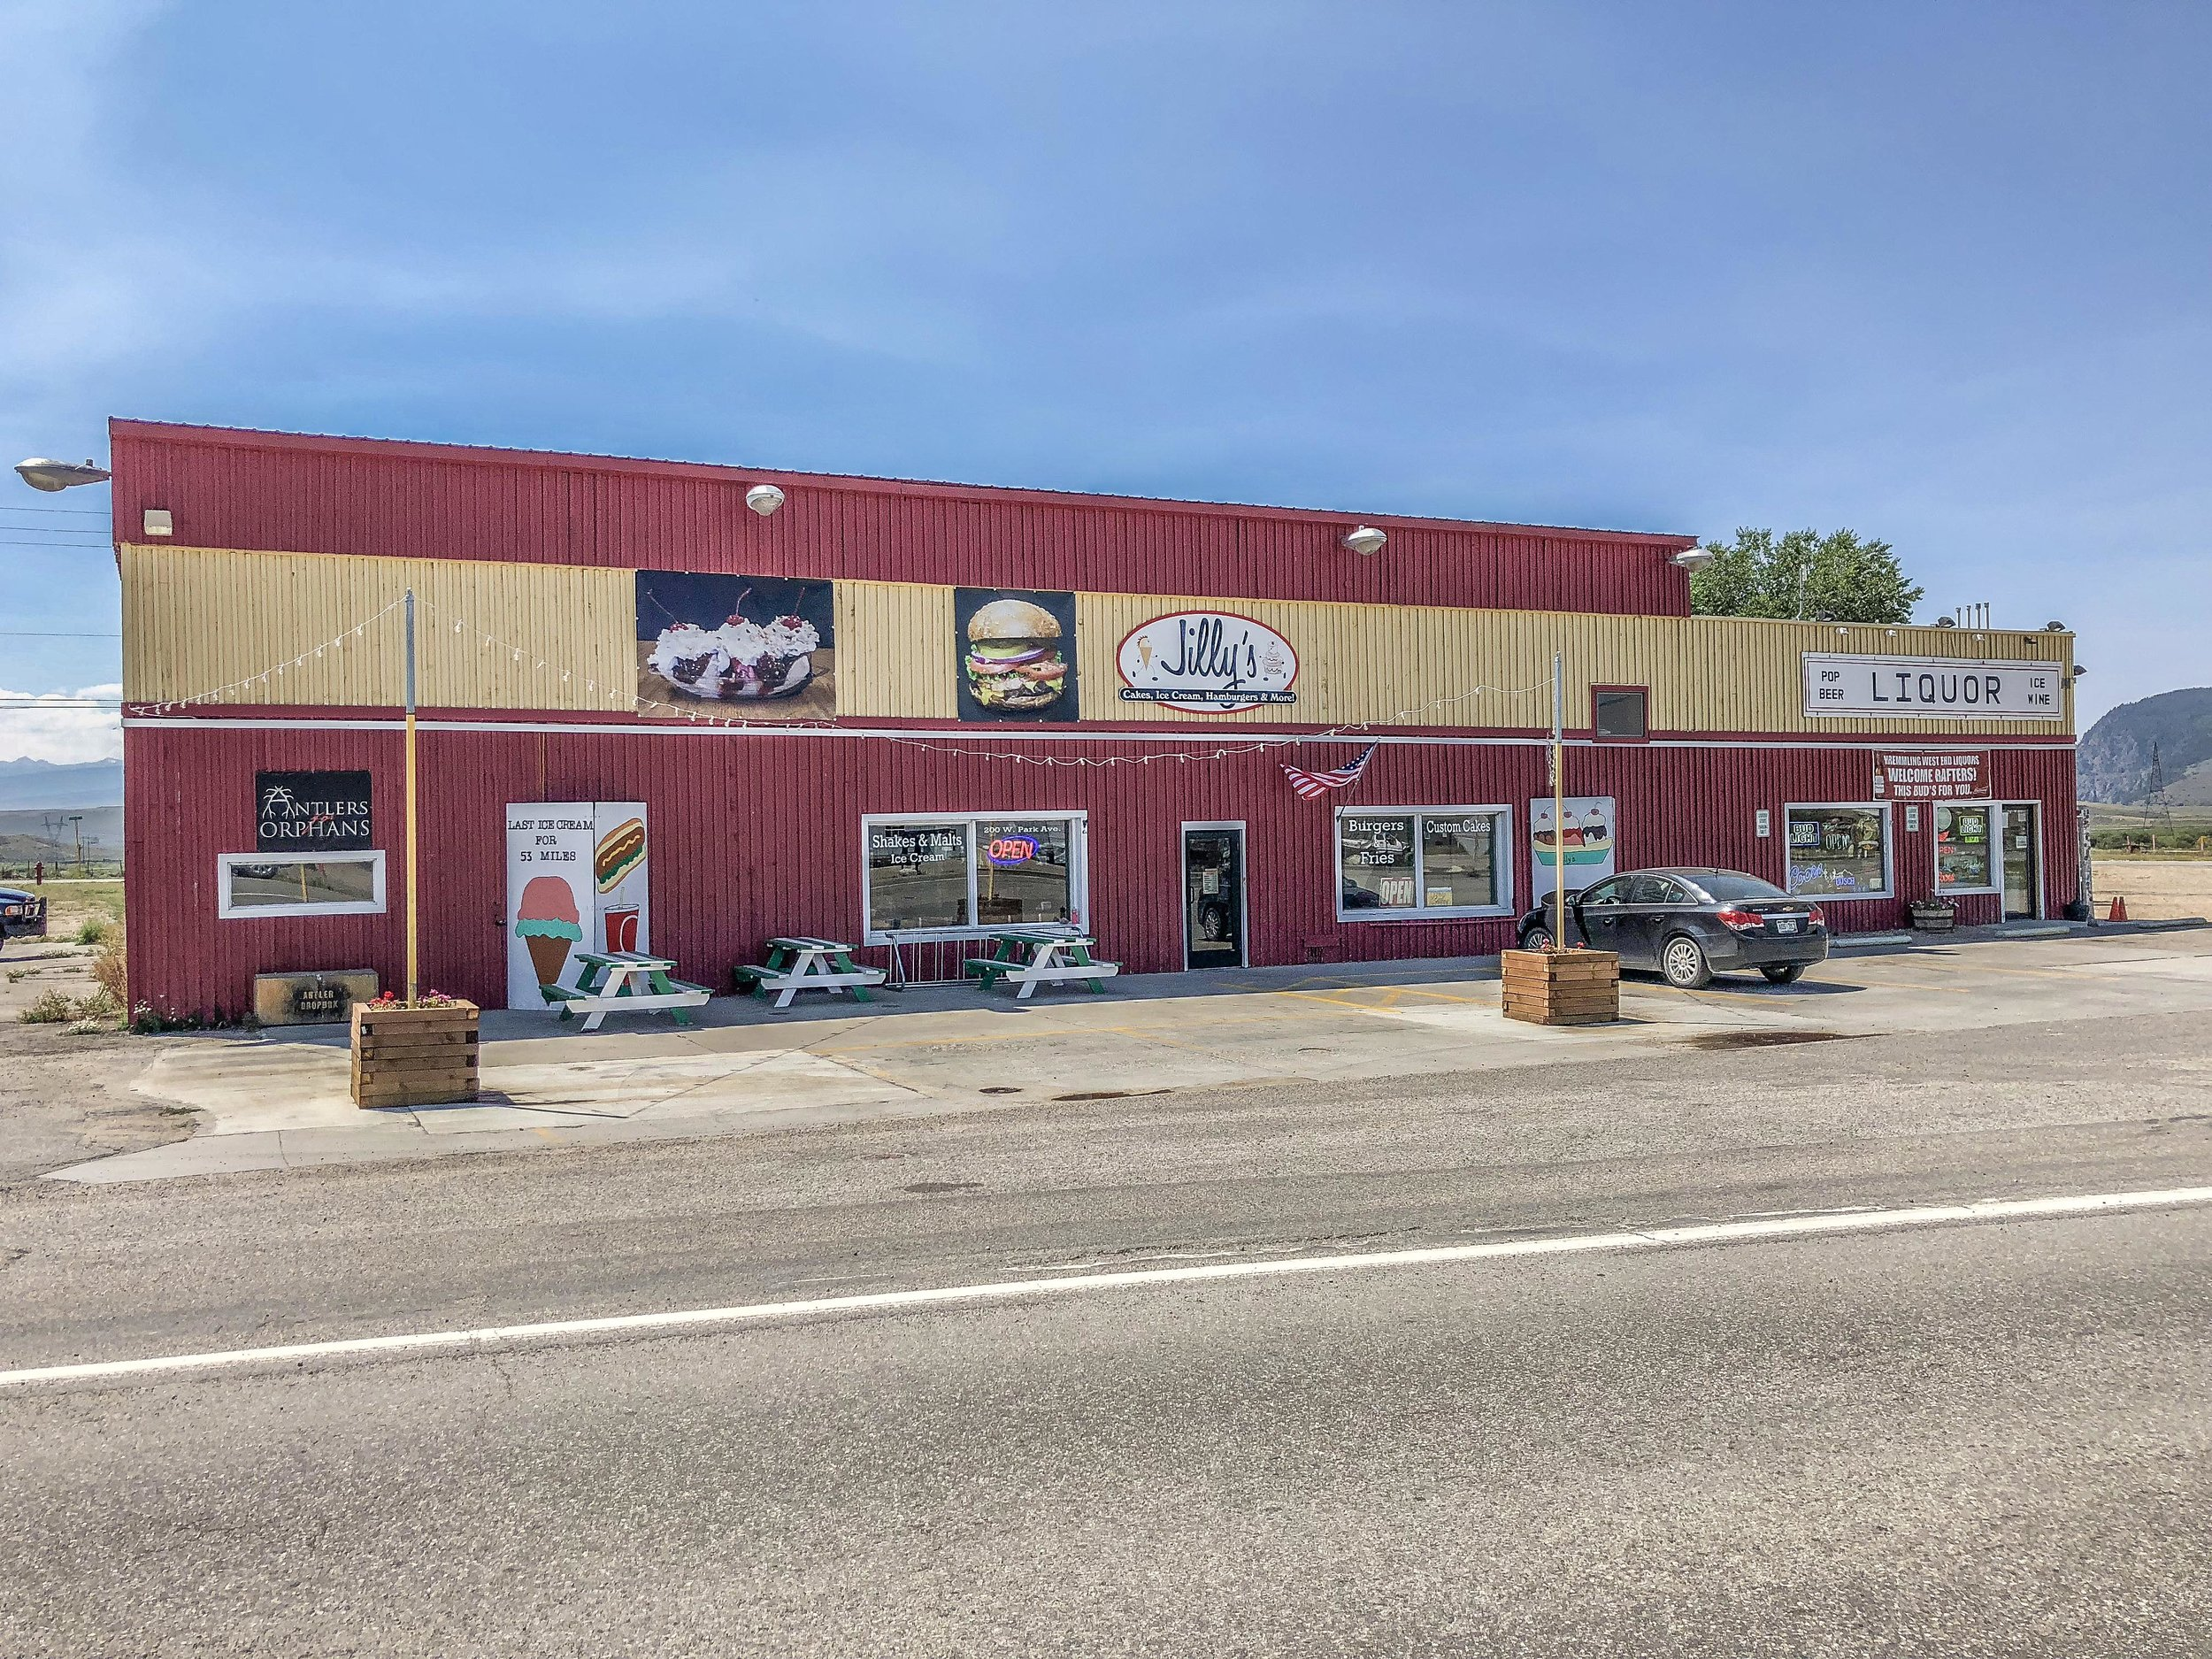 200 W Park Ave - KREMMLING - Versatile commercial location with Highway 40 frontage and lots of parking. Currently the building is mostly occupied and includes a liquor store and warehouse tenant. The vacant portion of the building was a restaurant but has many possibilities. Listed for $379,999